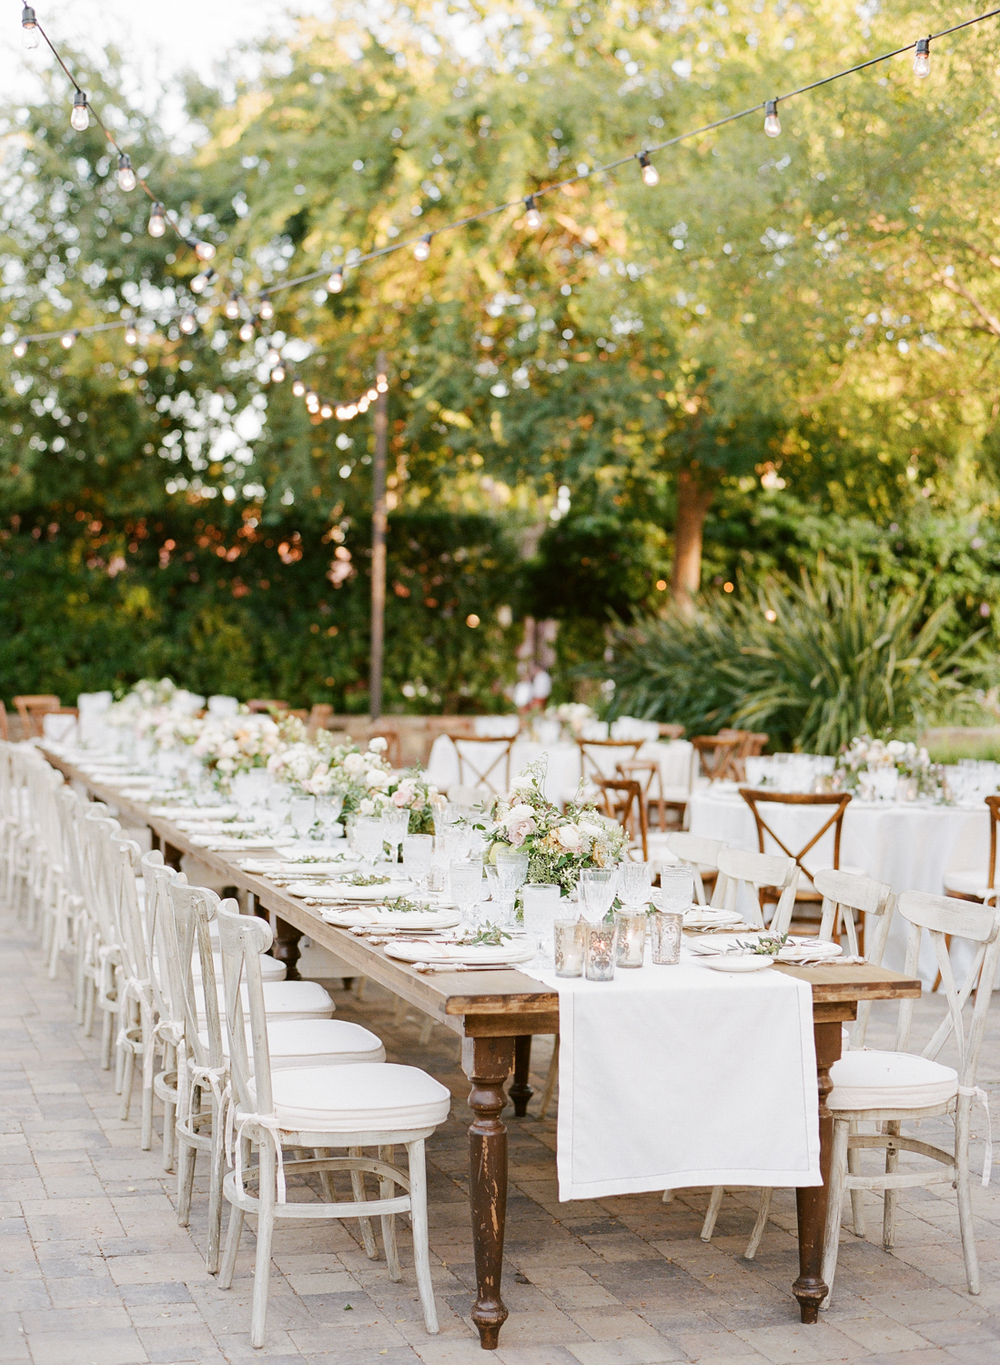 Rustic wooden tables lined with crisp white linen runners create a fresh spring look to this outdoor reception; photo by Sylvie Gil